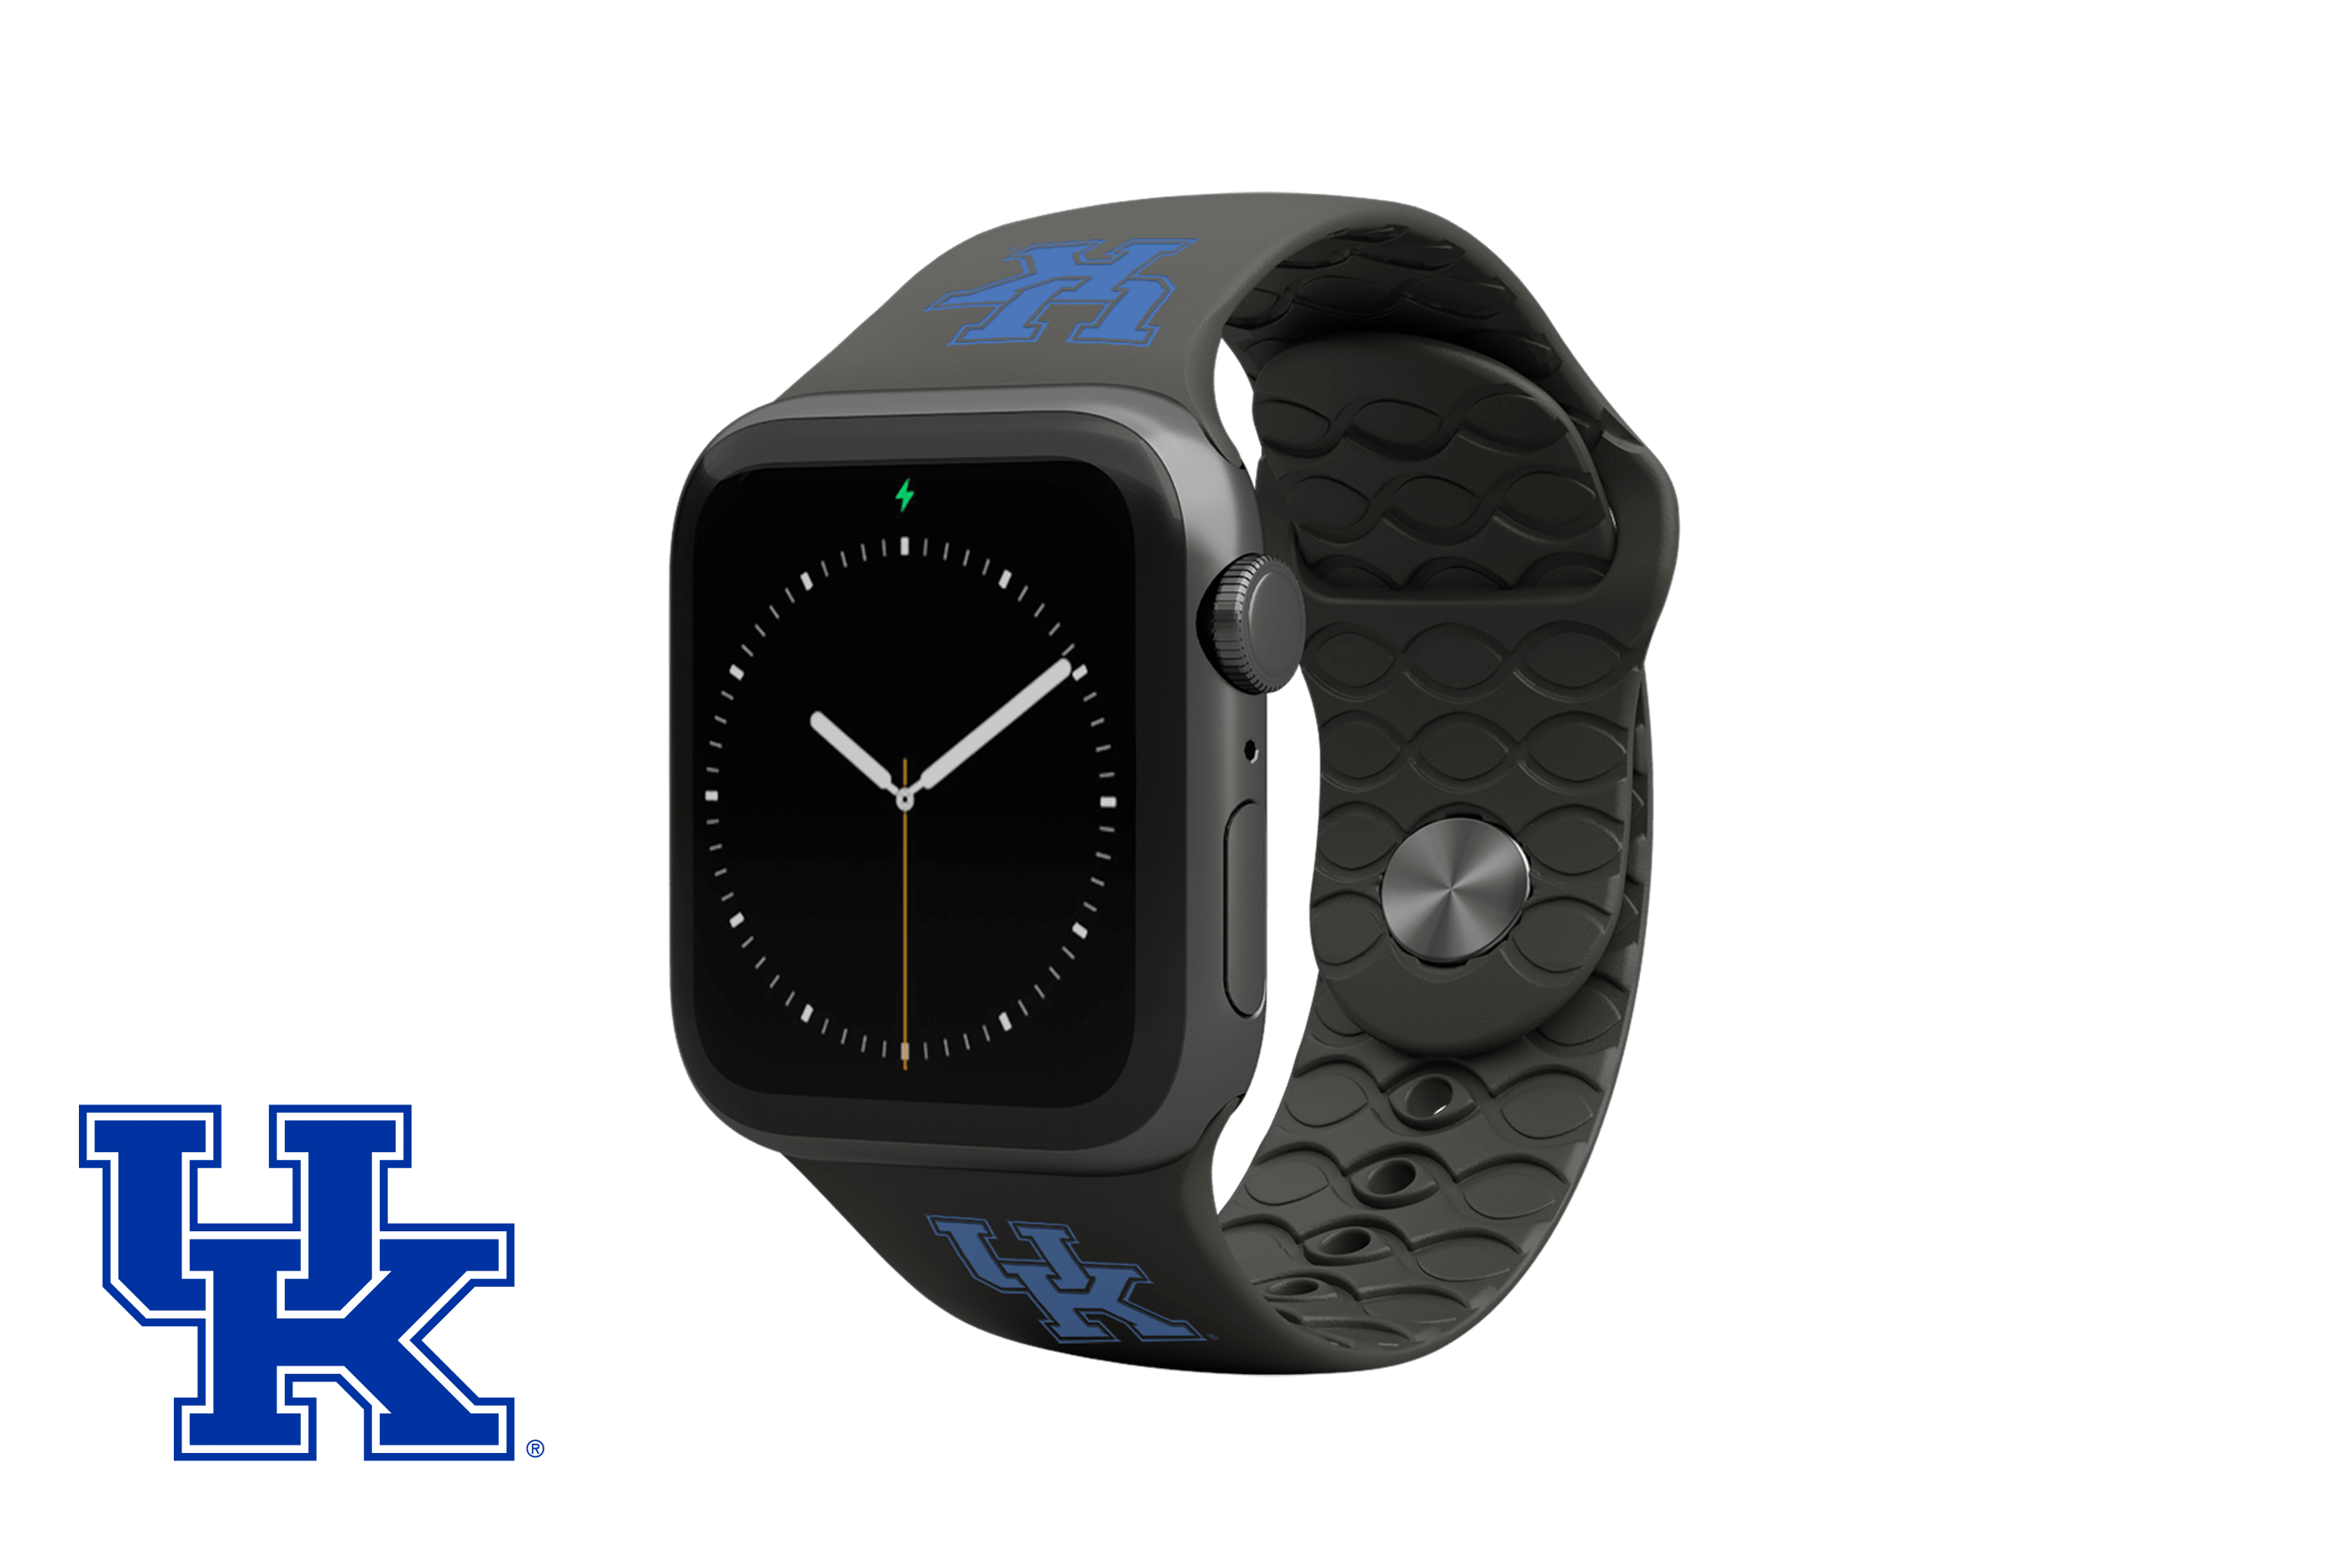 Apple Watch Band College Kentucky Black with gray hardware viewed front on